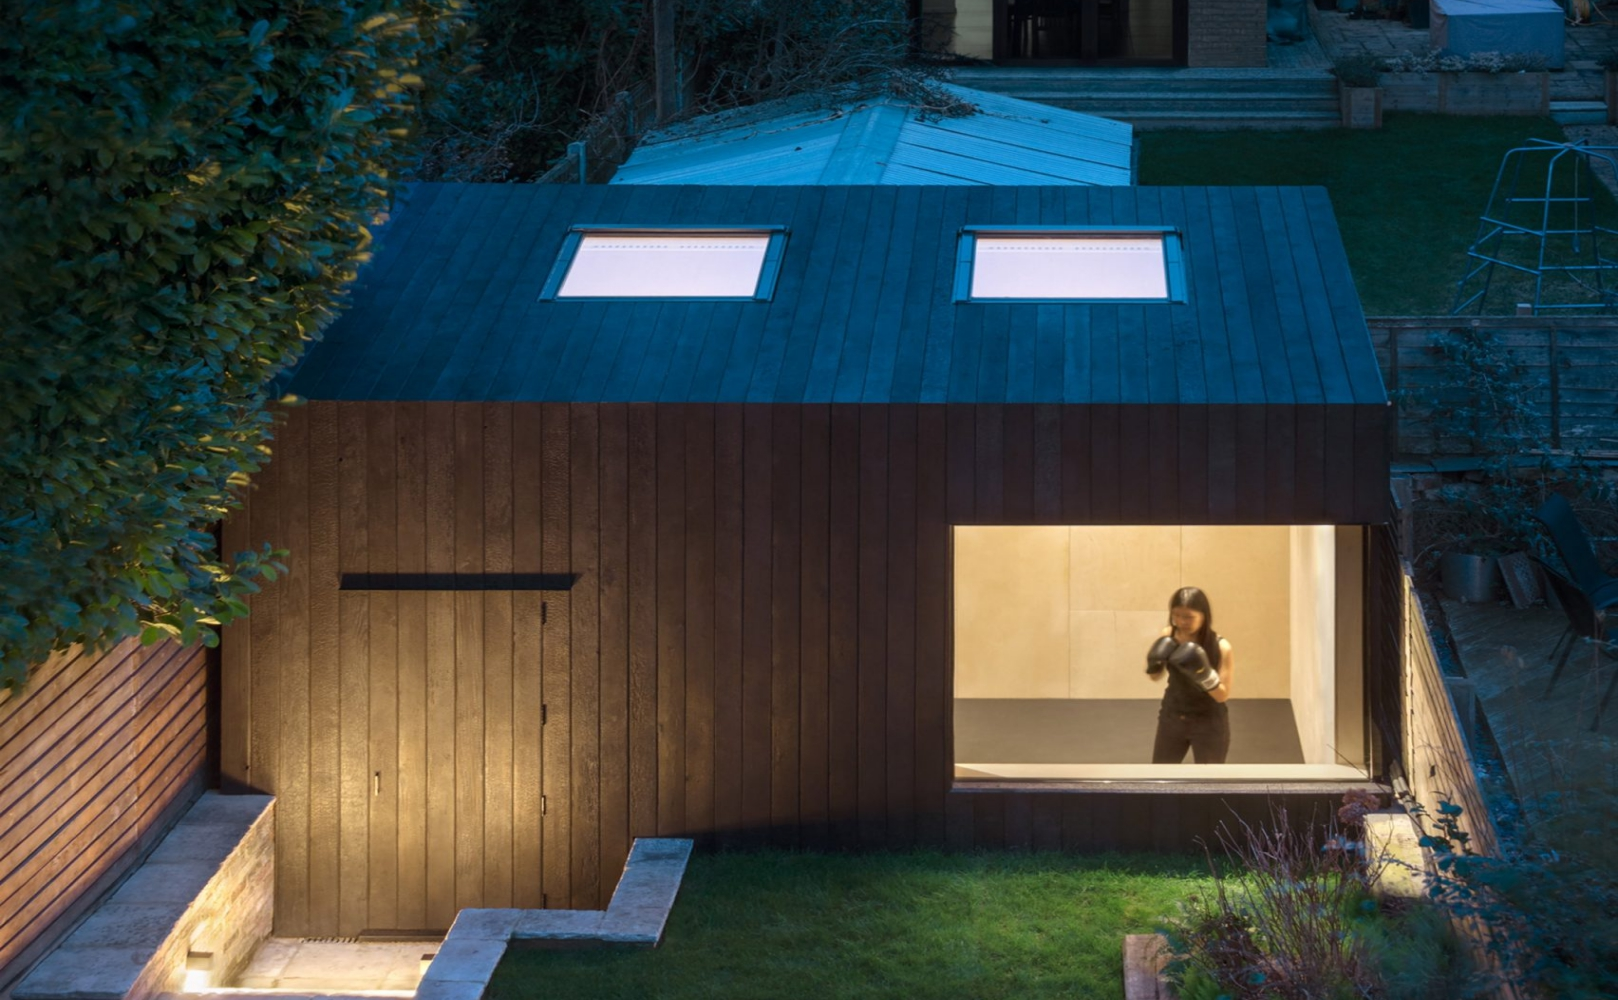 gxxarden-studio-gym-eastwest-architecture-residential-house-shed-timber_dezeen_2364_col_0-1704x2556